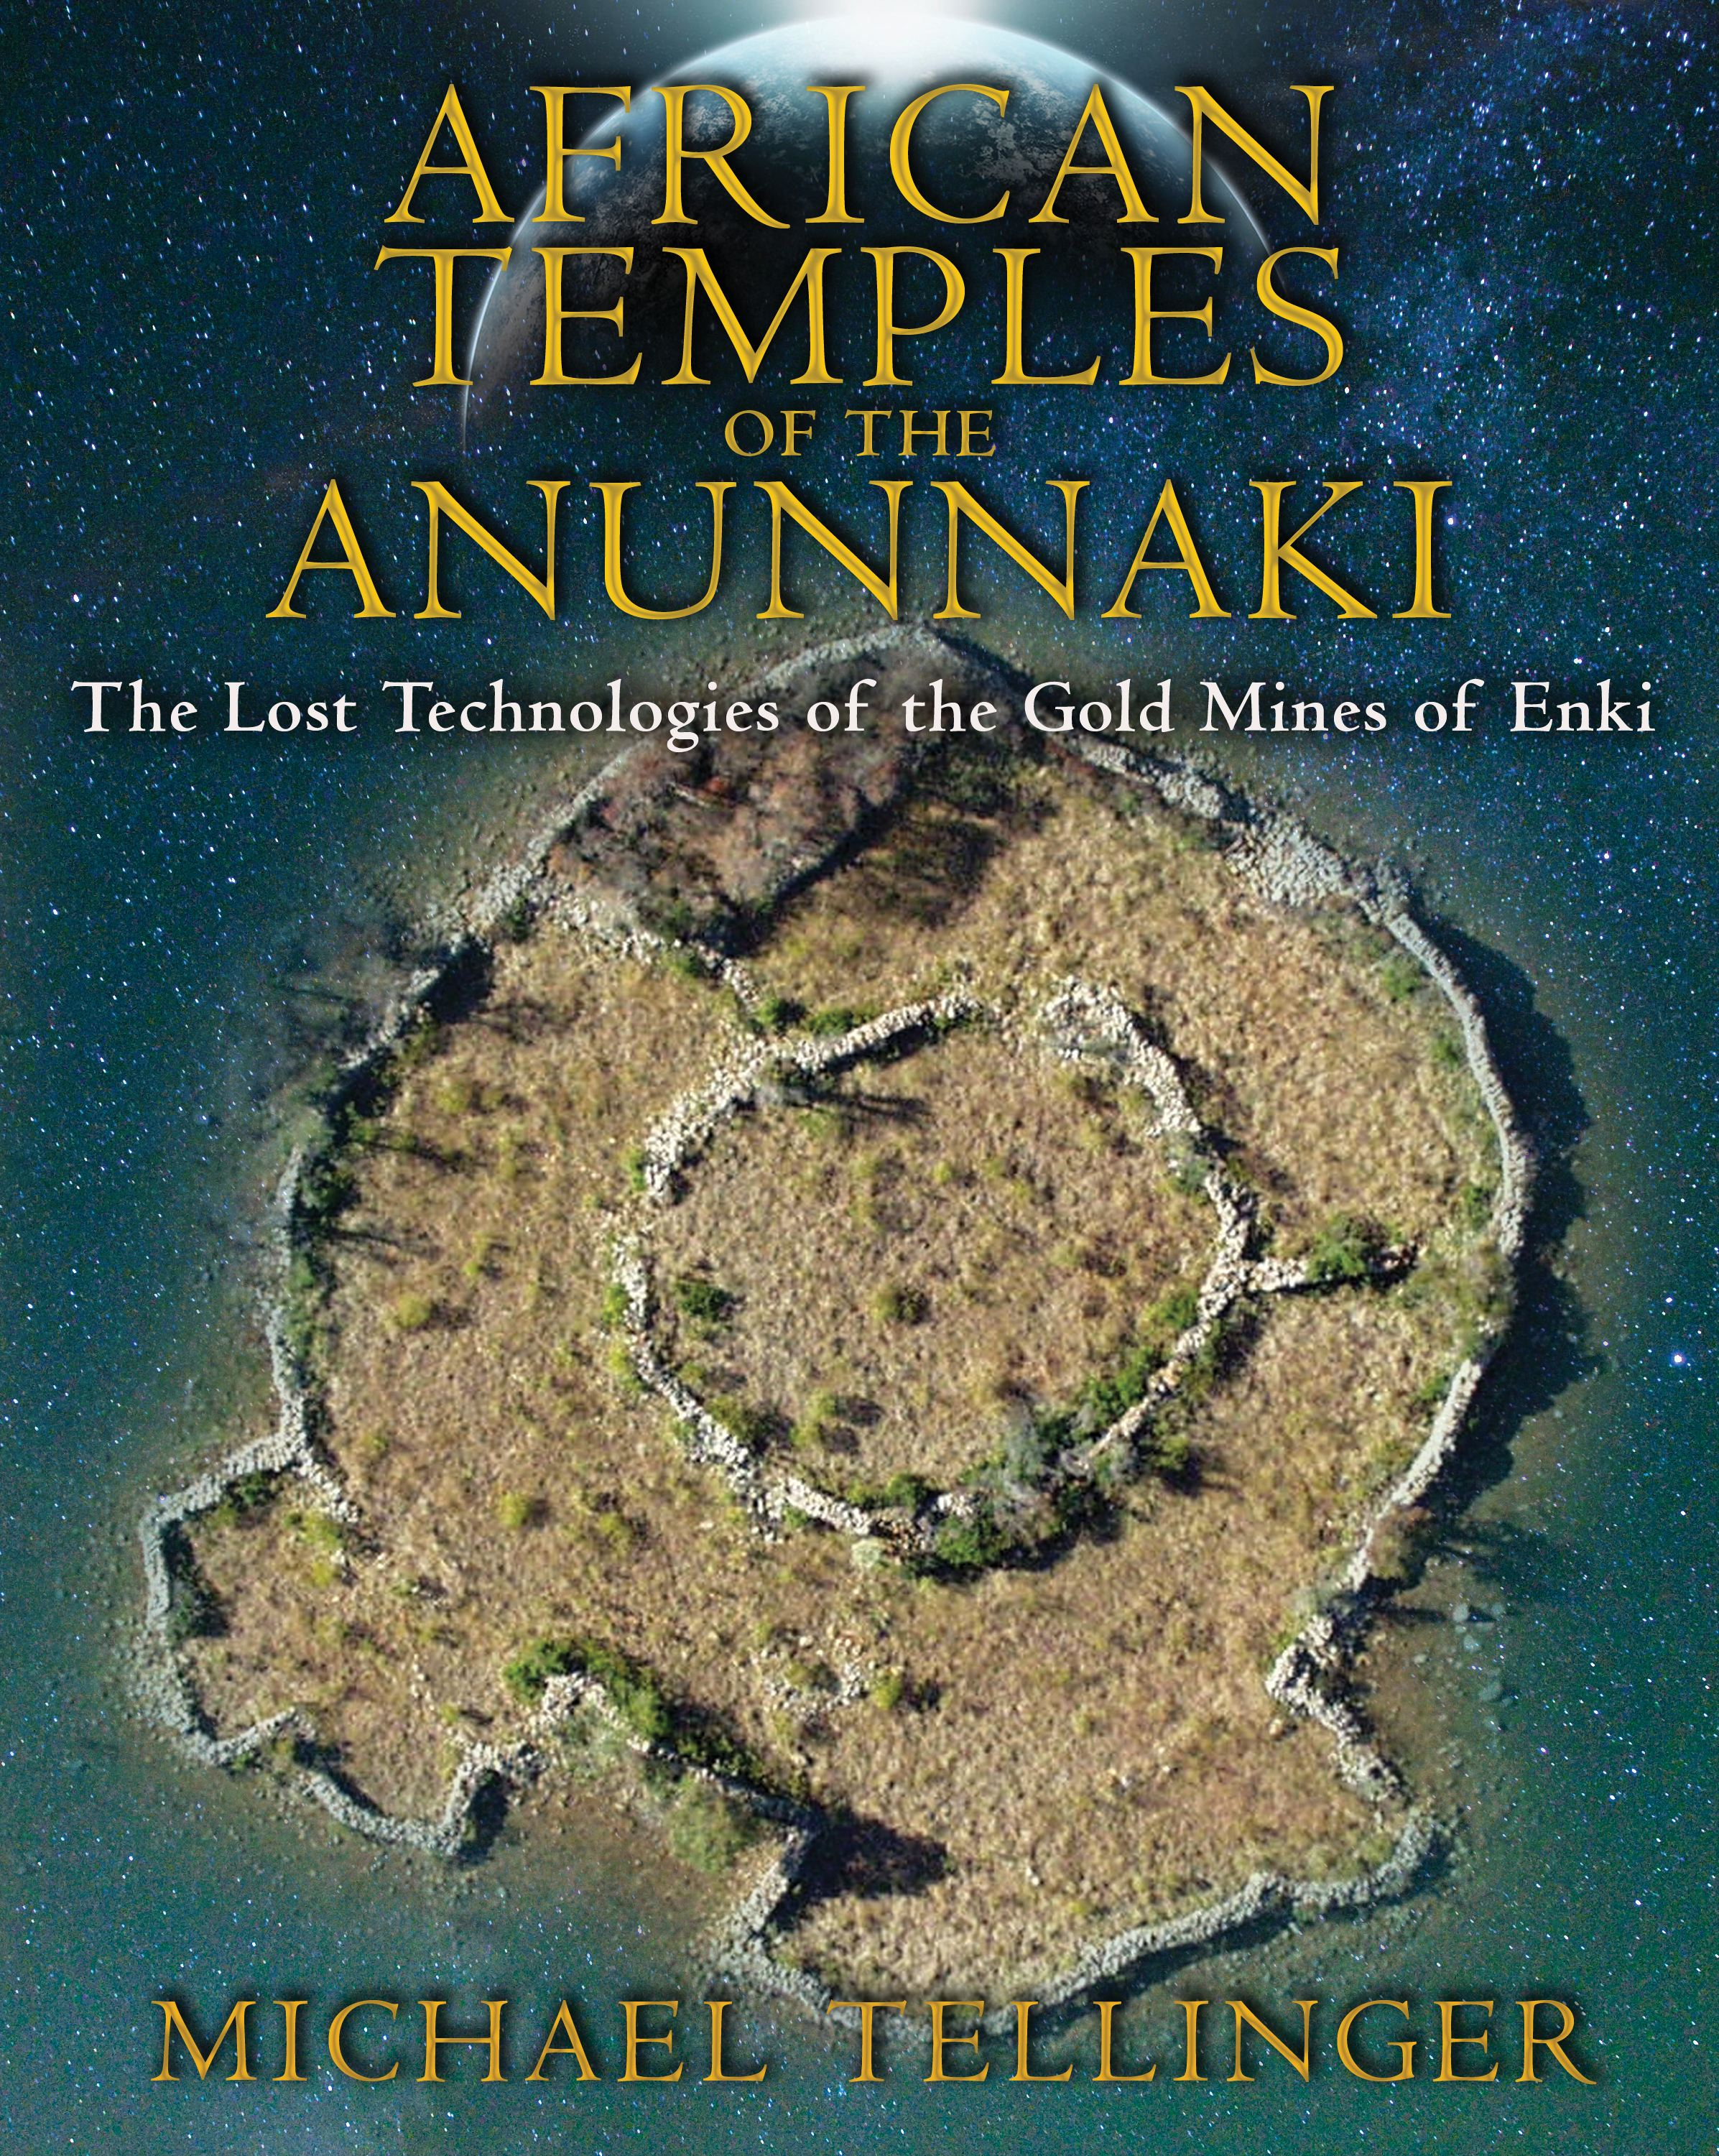 African temples of the anunnaki 9781591431503 hr